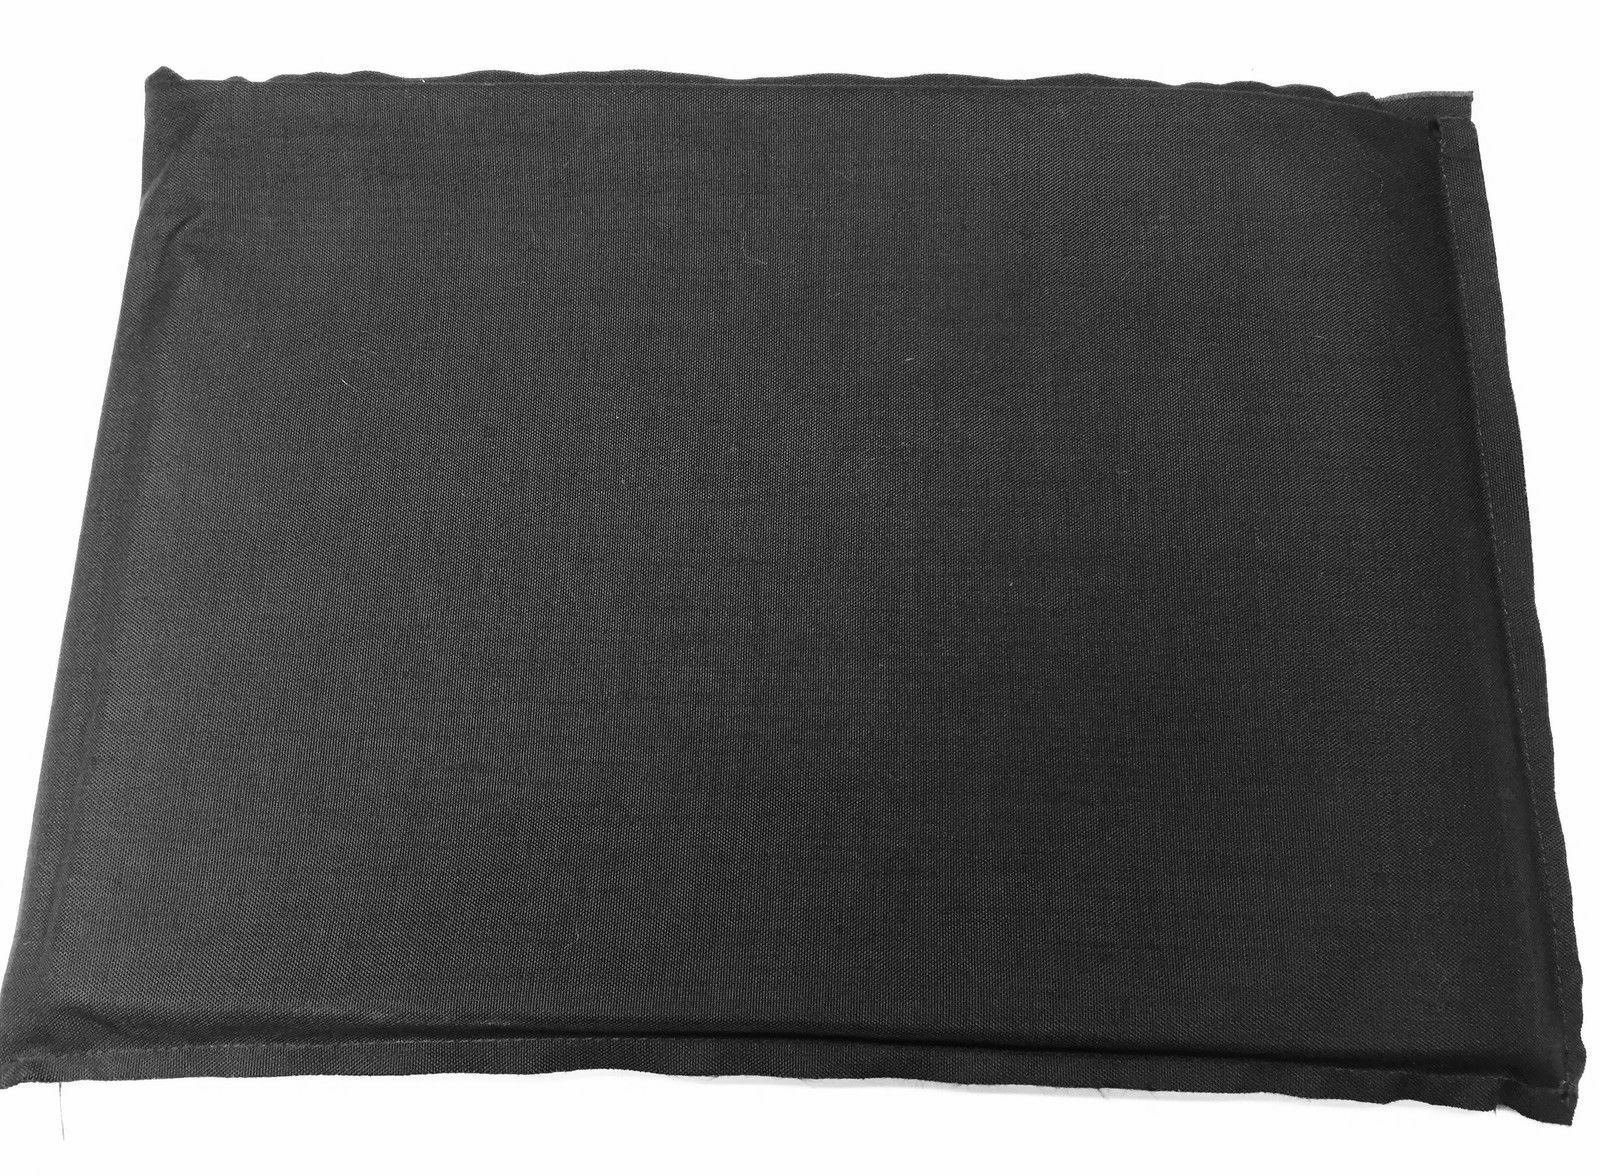 FIRESTORM 11X14  LEVEL 3A SOFT  BALLISTIC PLATE INSERT 1.25 LBS  online shopping sports